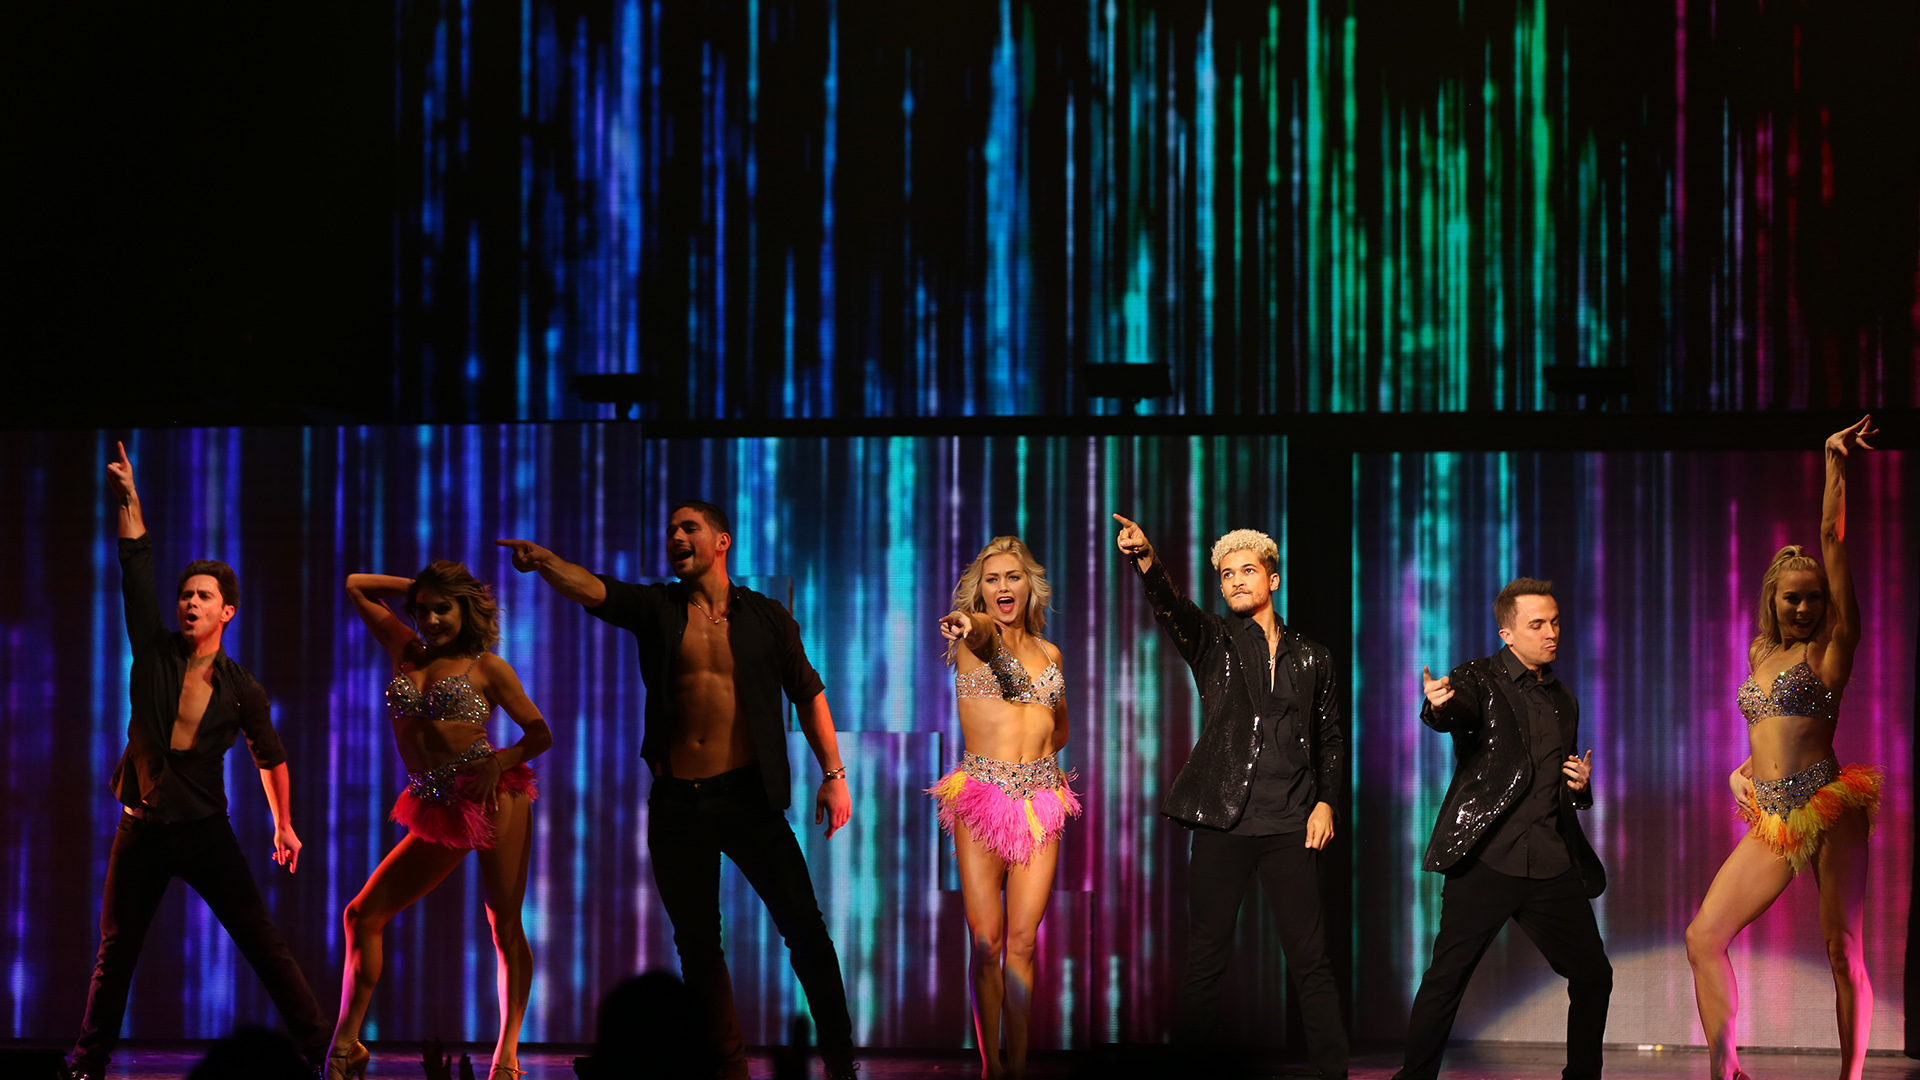 'Dancing with the Stars' pro Lindsay Arnold: Live tour showcases 'our full potential'